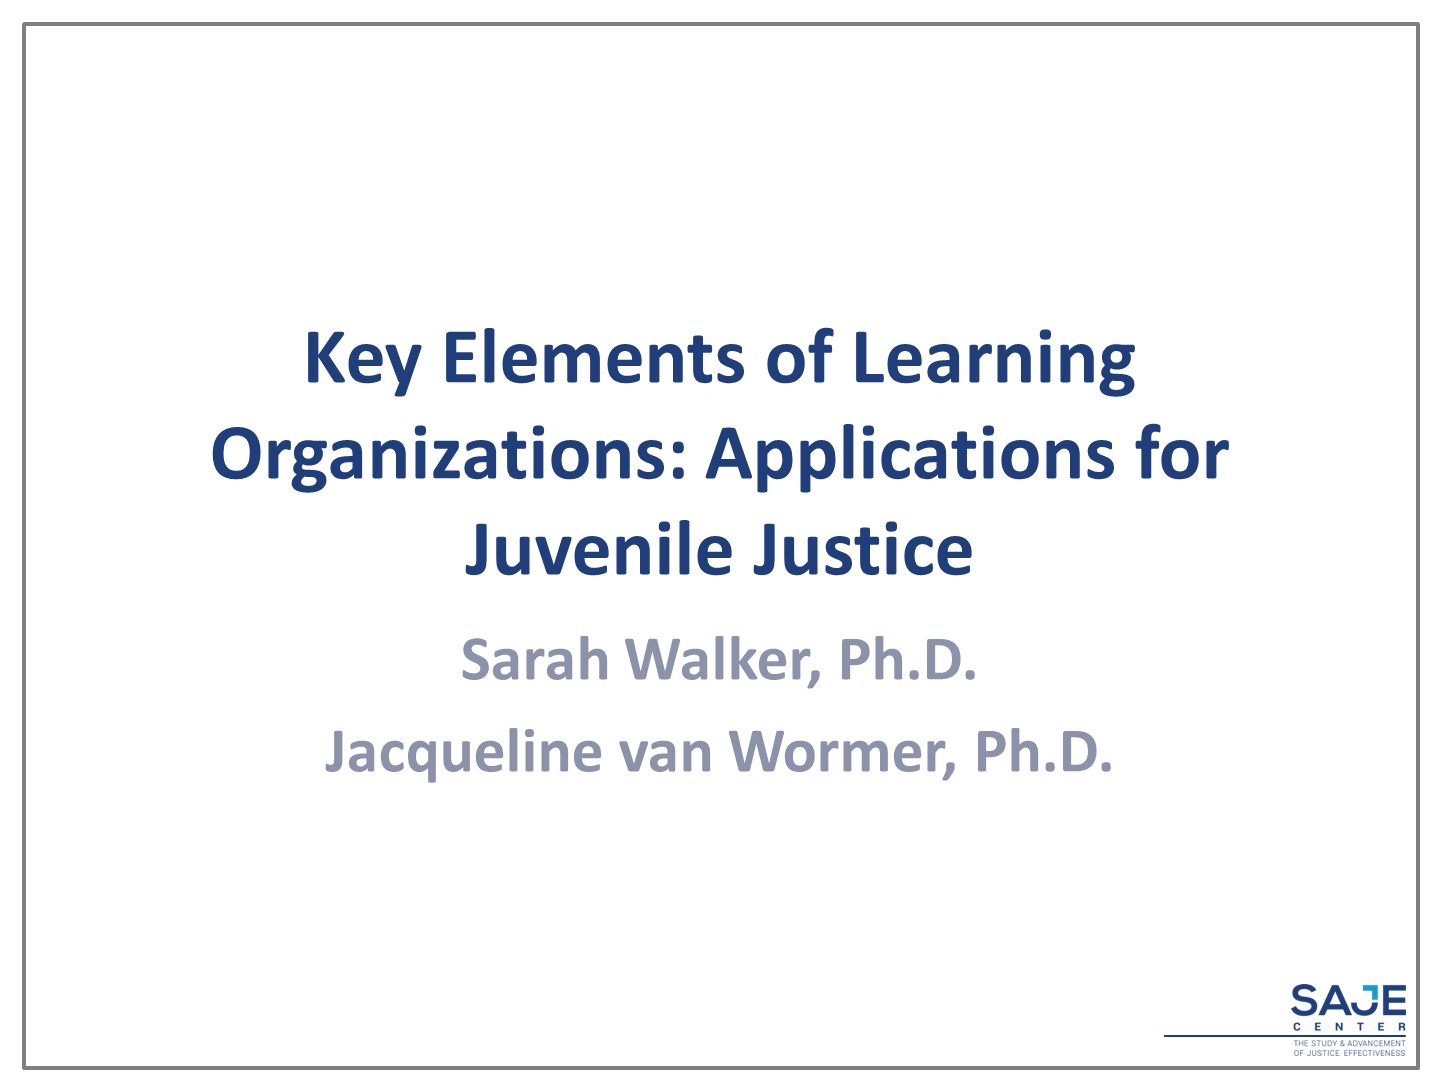 Key Elements of Learning Organizations - Applications for Juvenile Justice.png